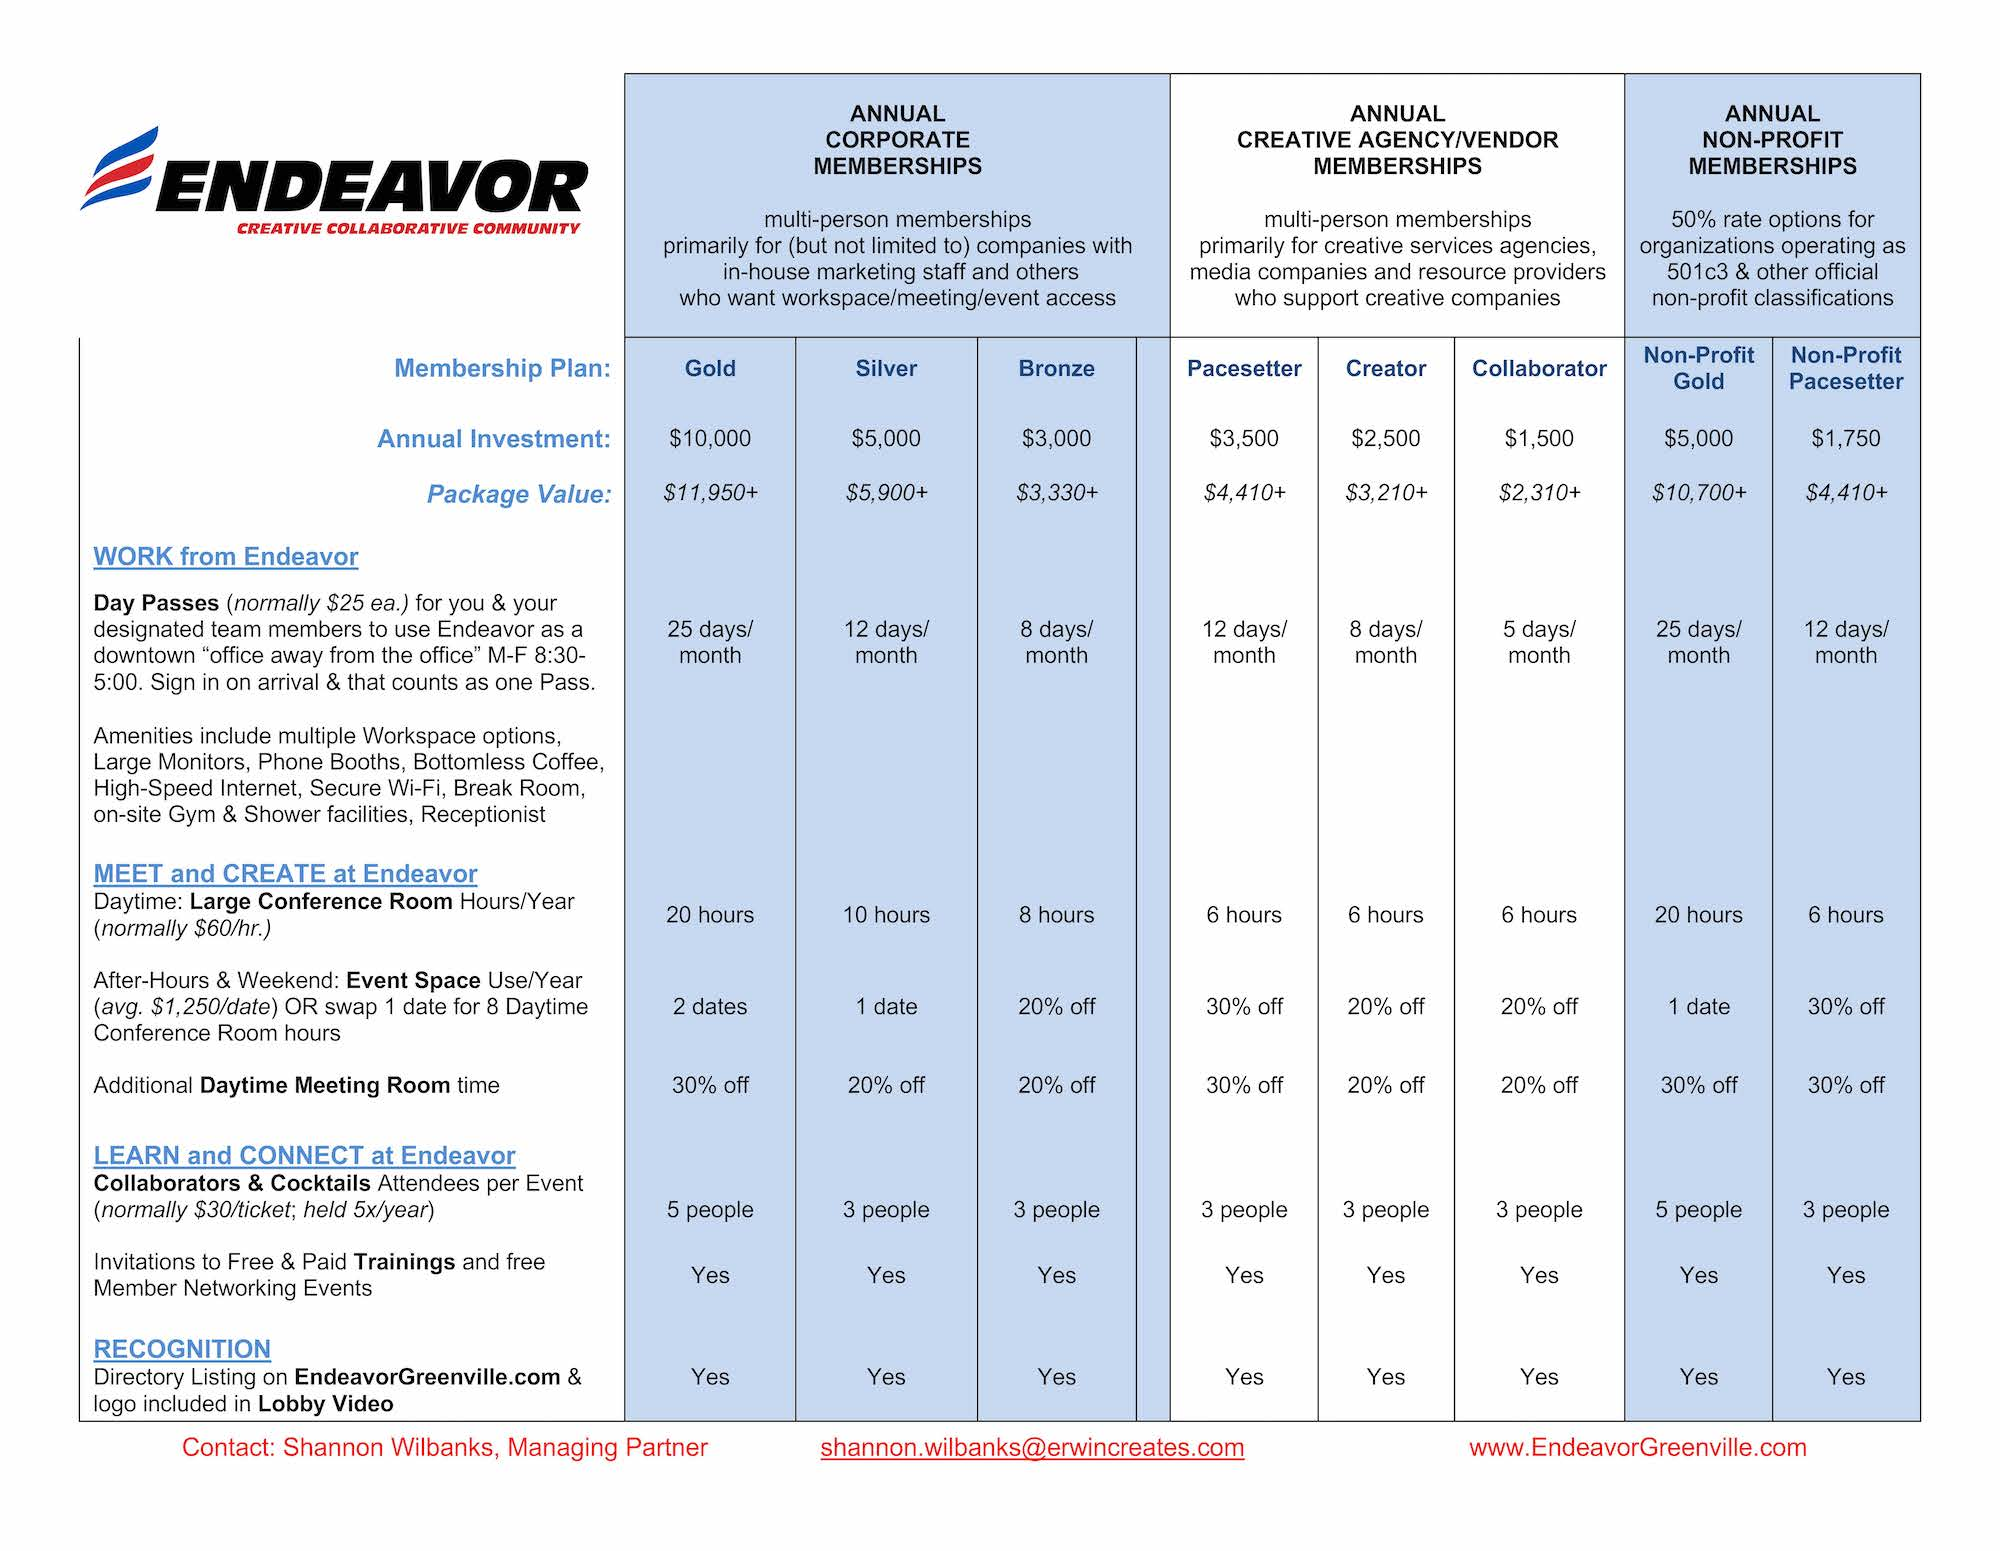 2020 Endeavor Corporate Mships (1)- Image